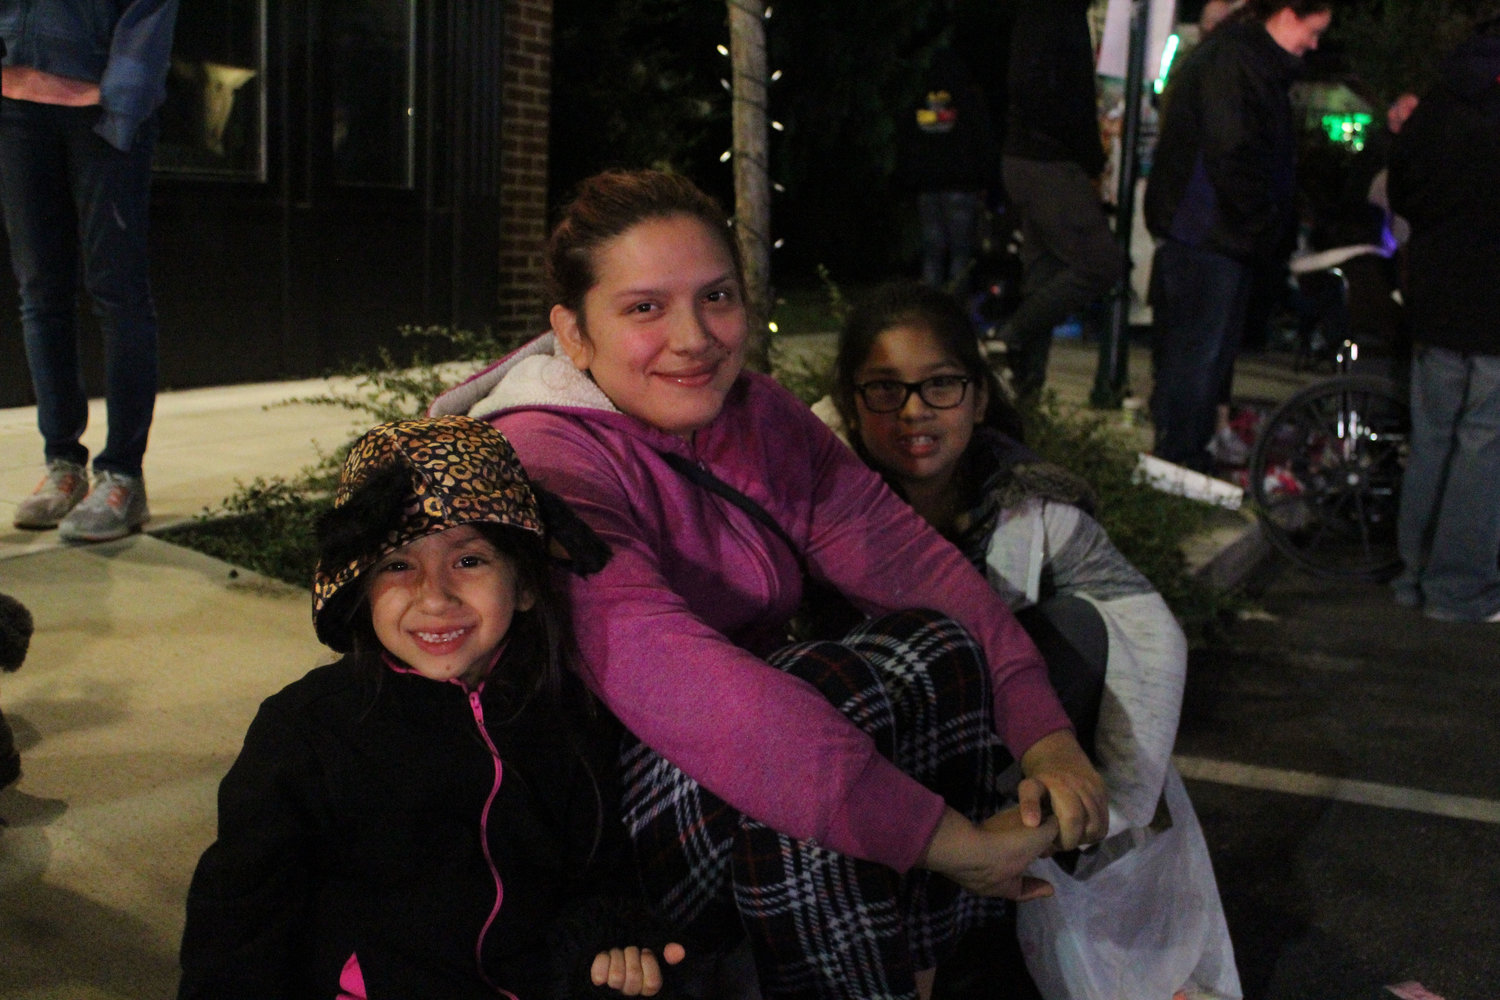 Jeylin Hernandez, Karem Sanchez and Leslie Sarmiento watch the Halloween parade on Oct. 16.